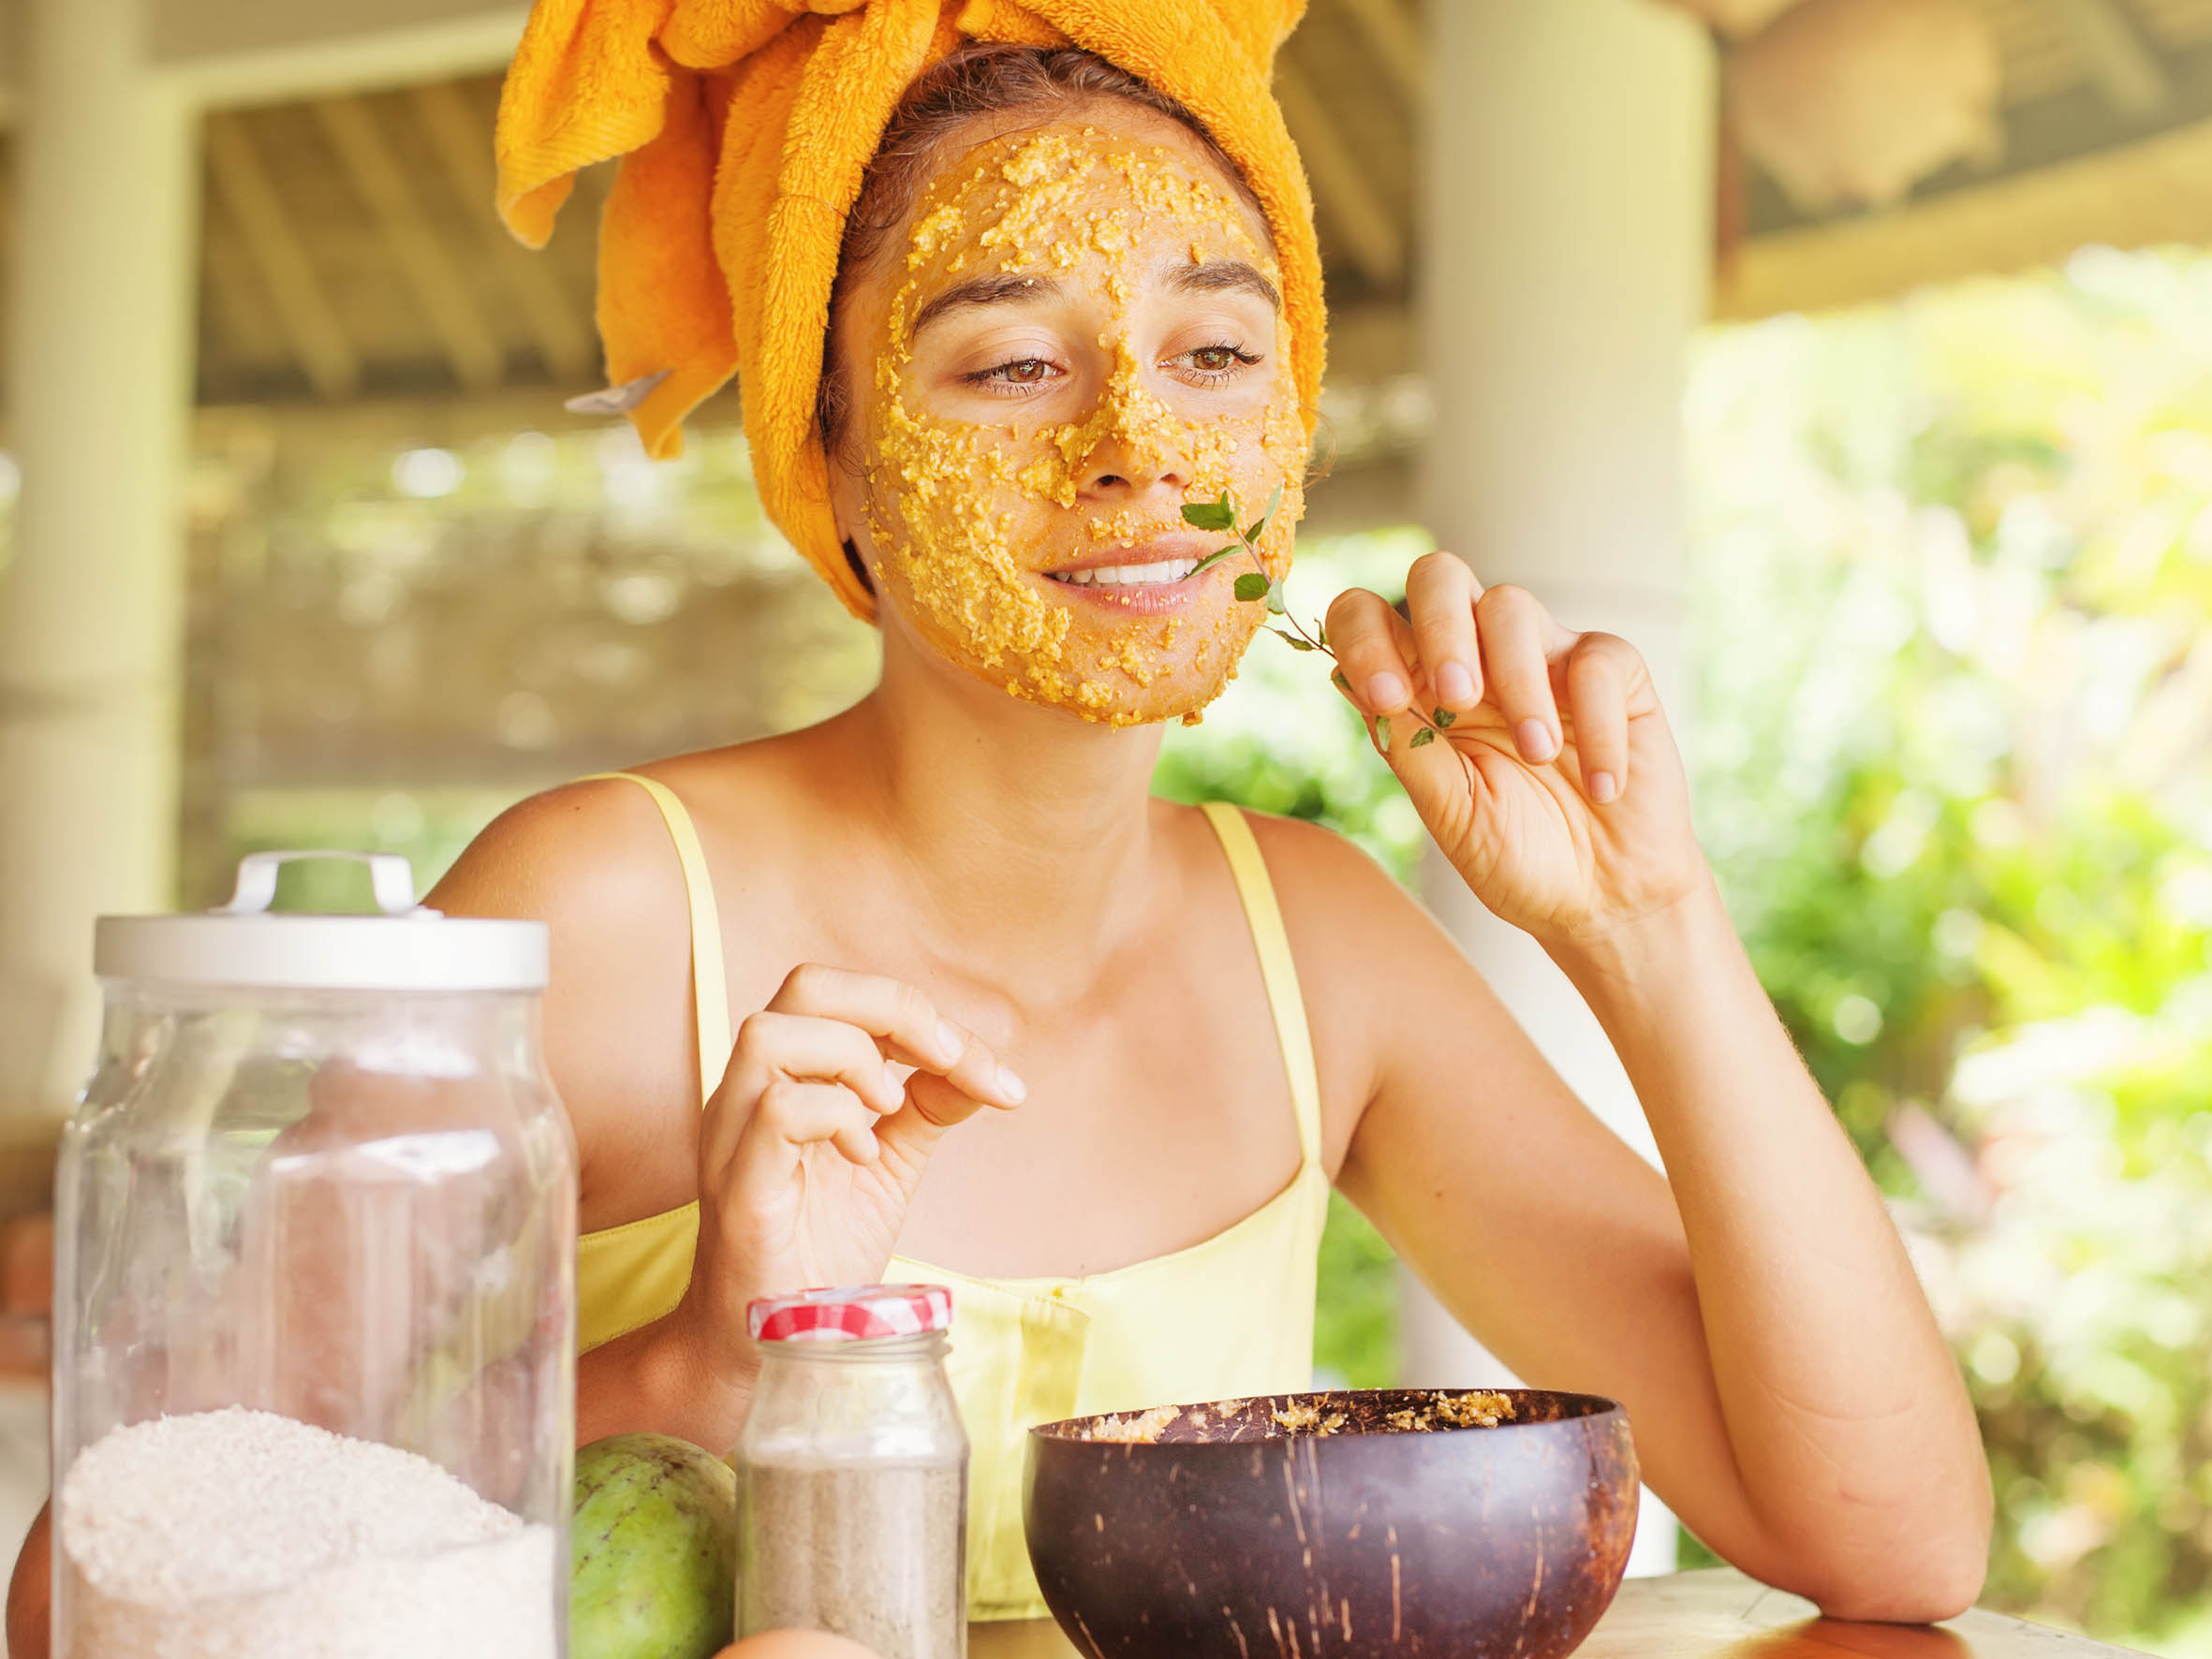 HOMEMADE MASKS FOR TAKING CARE OF YOUR SKIN